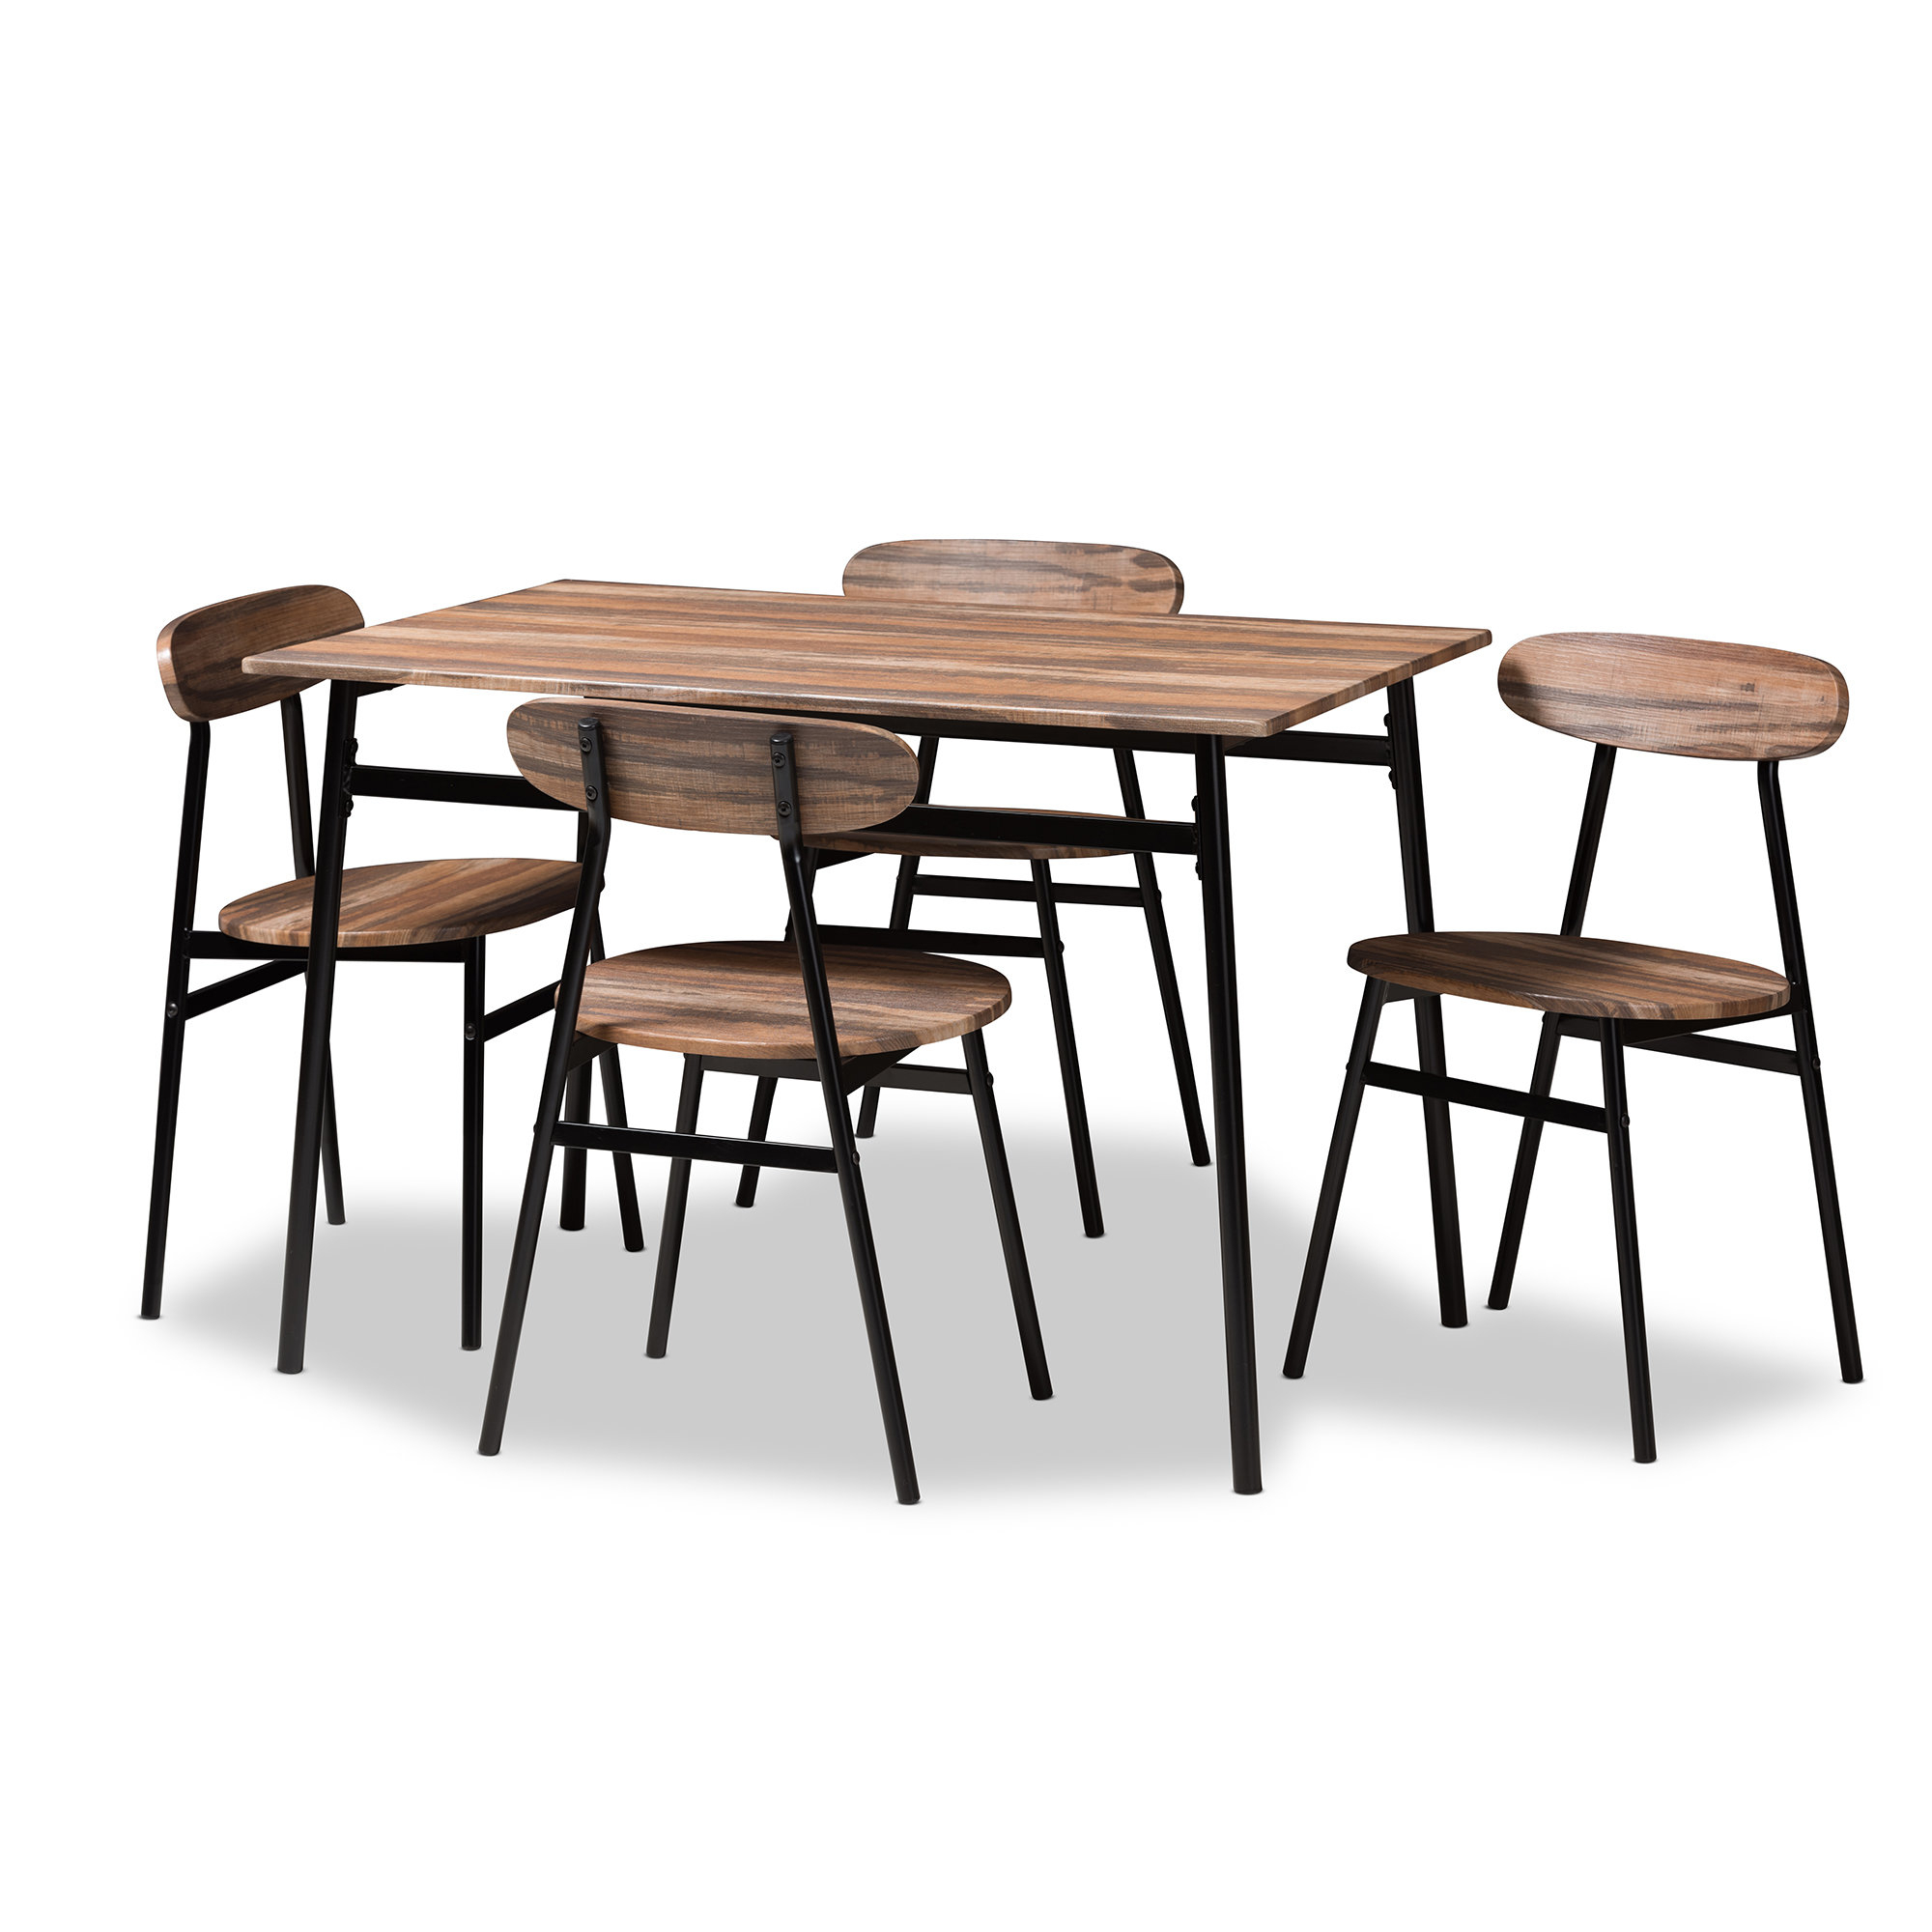 Telauges 5 Piece Dining Set Throughout Most Current Telauges 5 Piece Dining Sets (Photo 1 of 20)